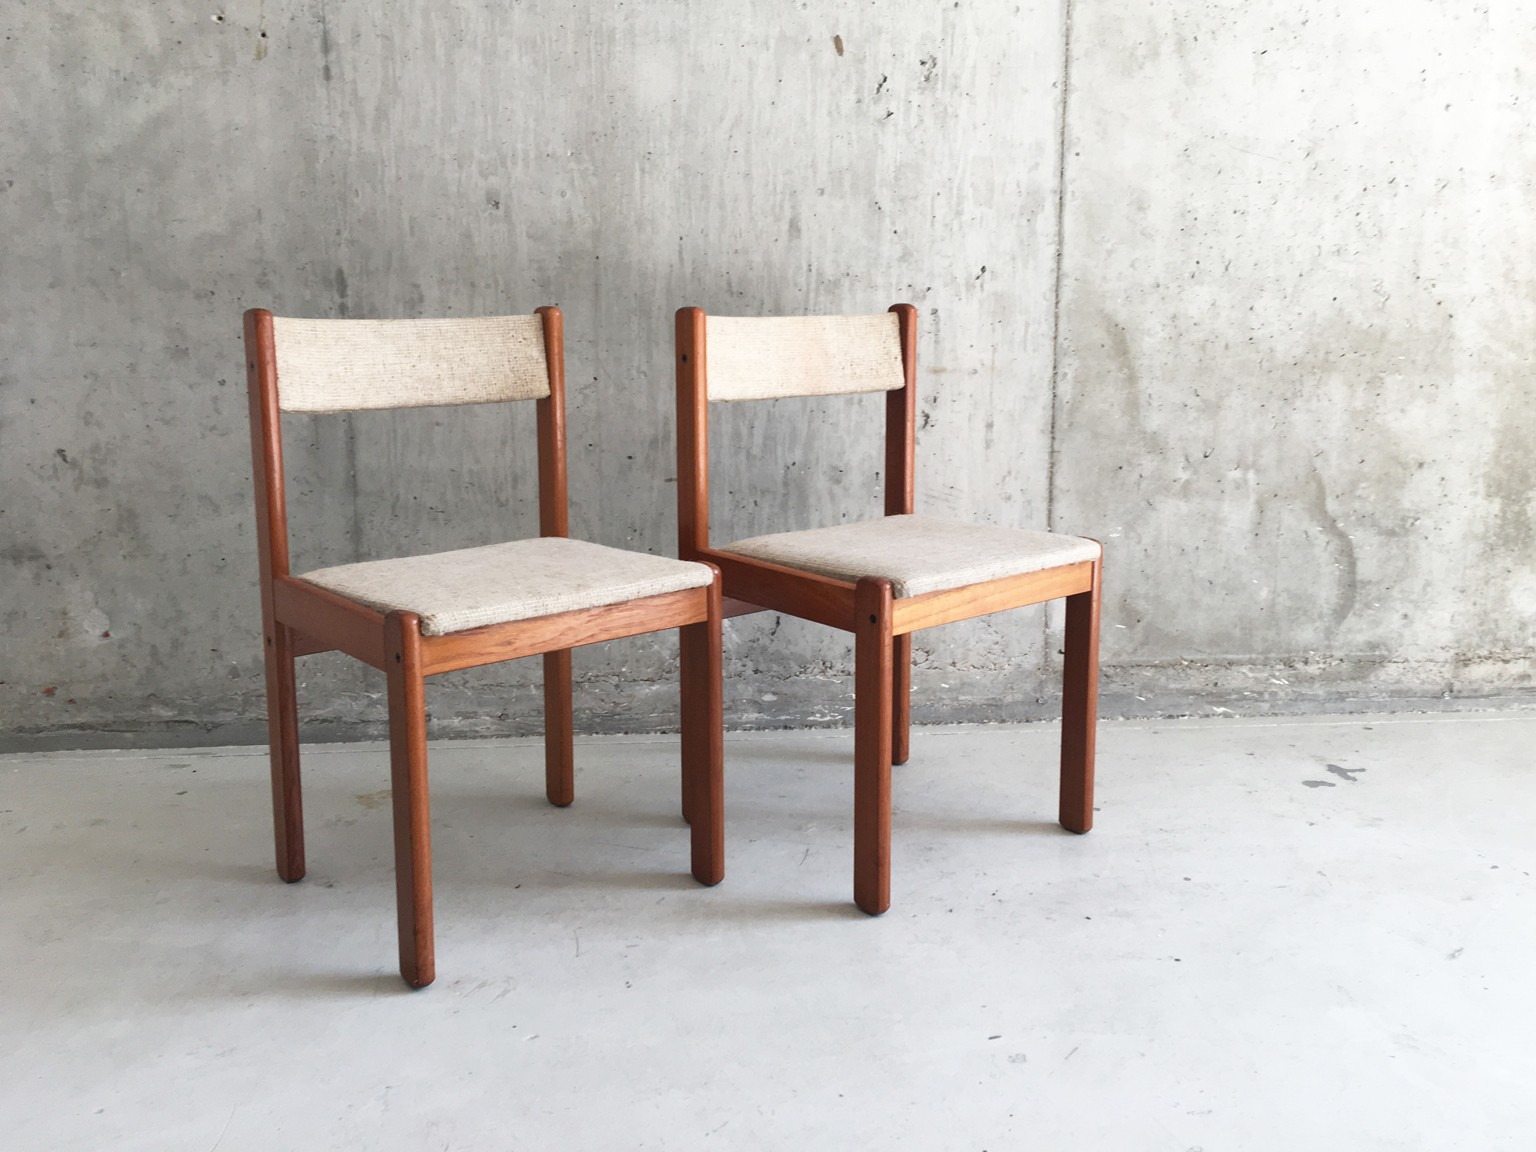 Vintage Danish Teak Dining Chairs 1970s Design Market